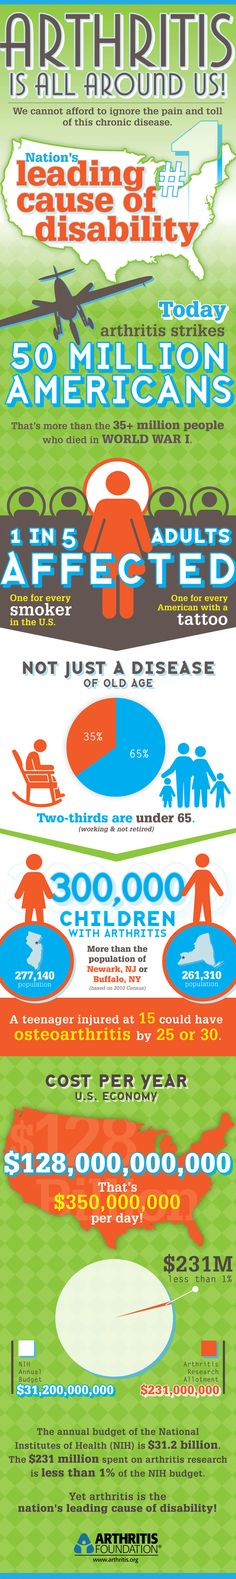 #Arthritis Know more about the reach of arthritis from this infographic from the Arthritis Foundation. #arthritis #health